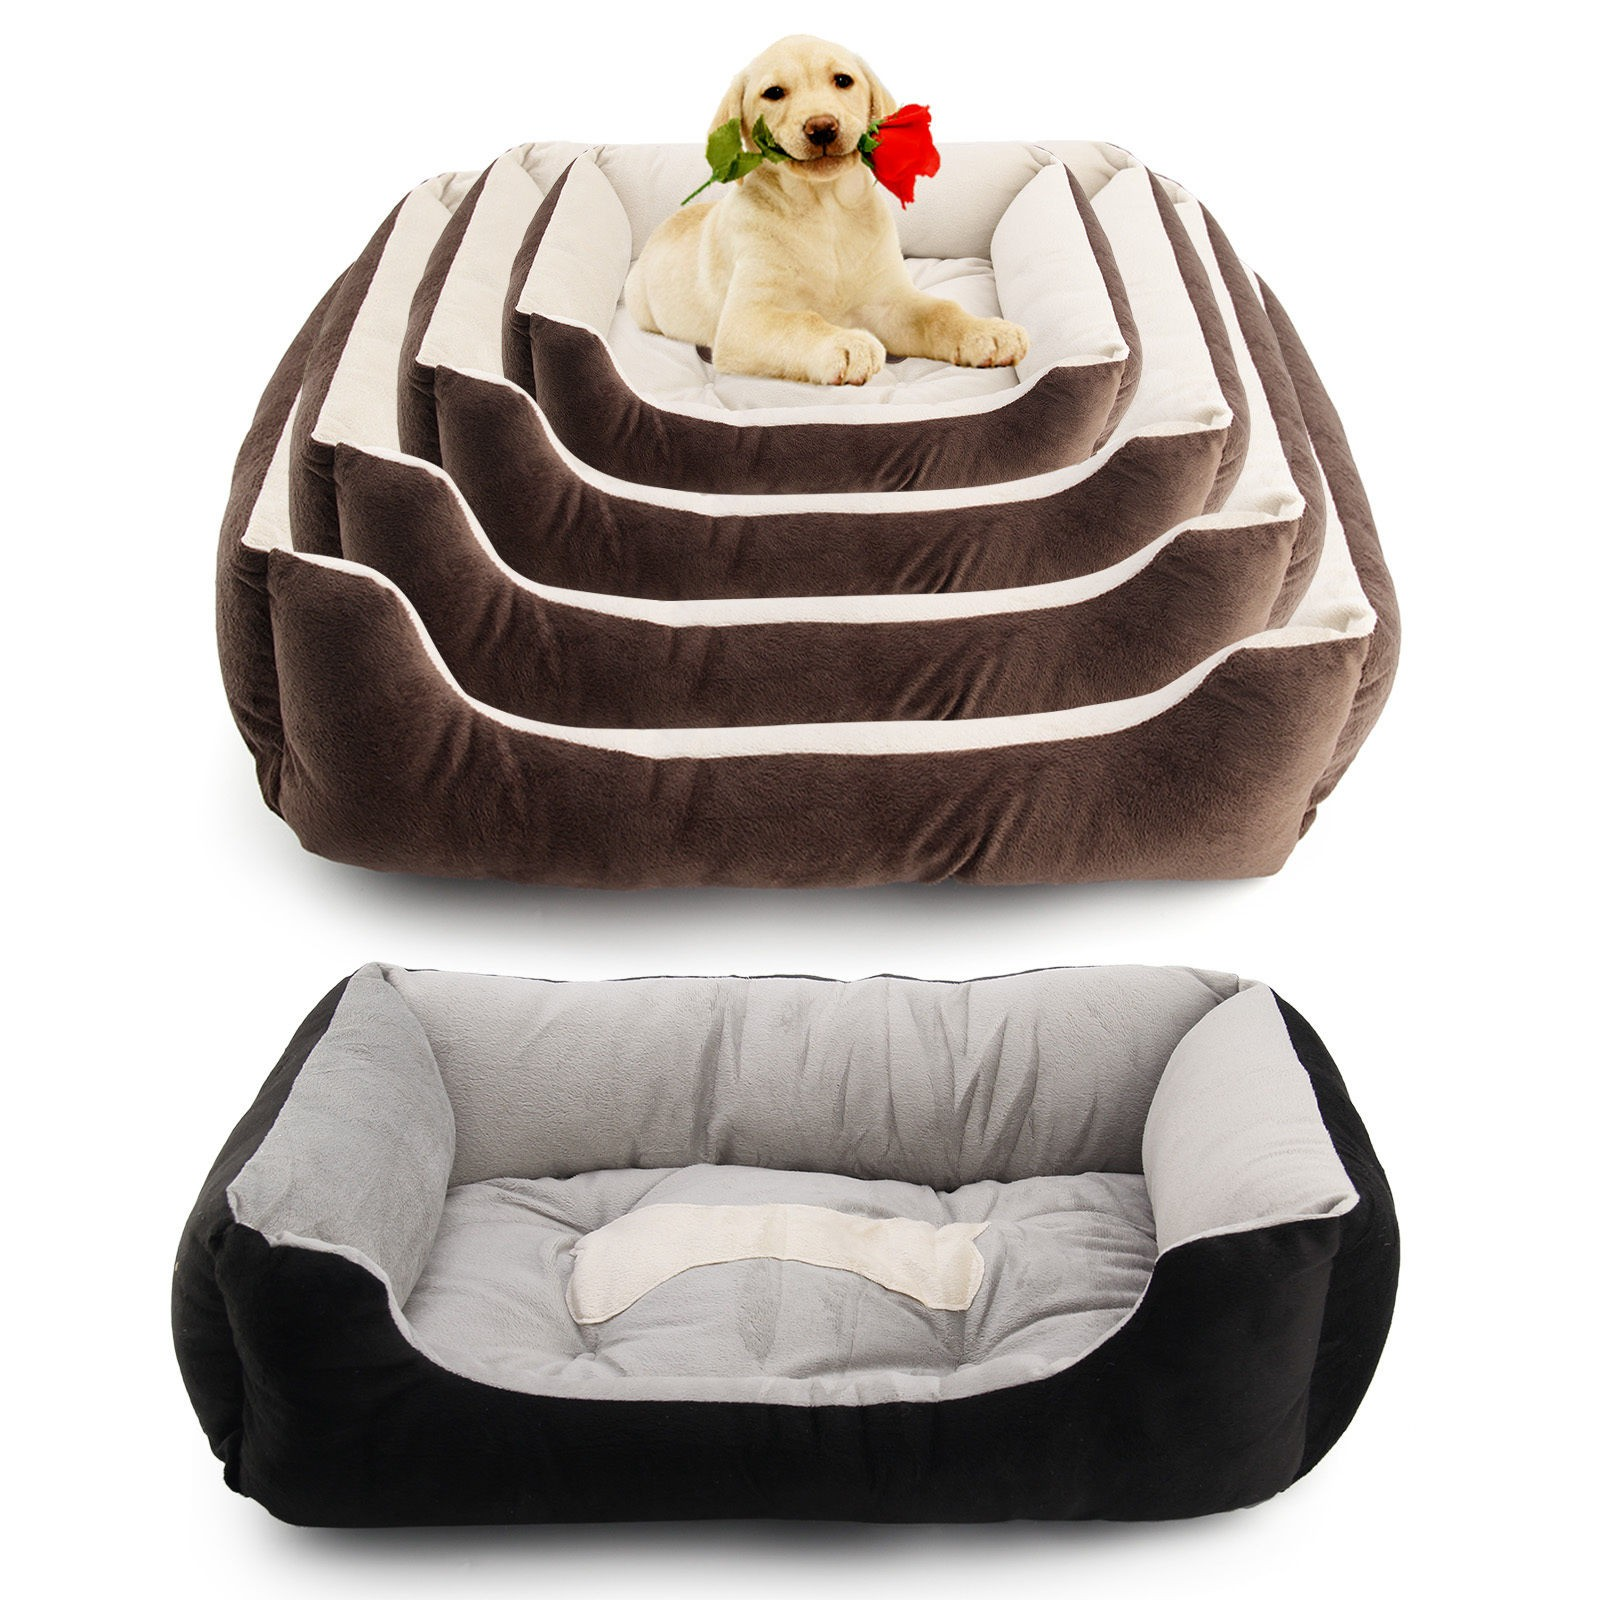 big size large pet bed cushion dog warm nest kennel puppy cat soft